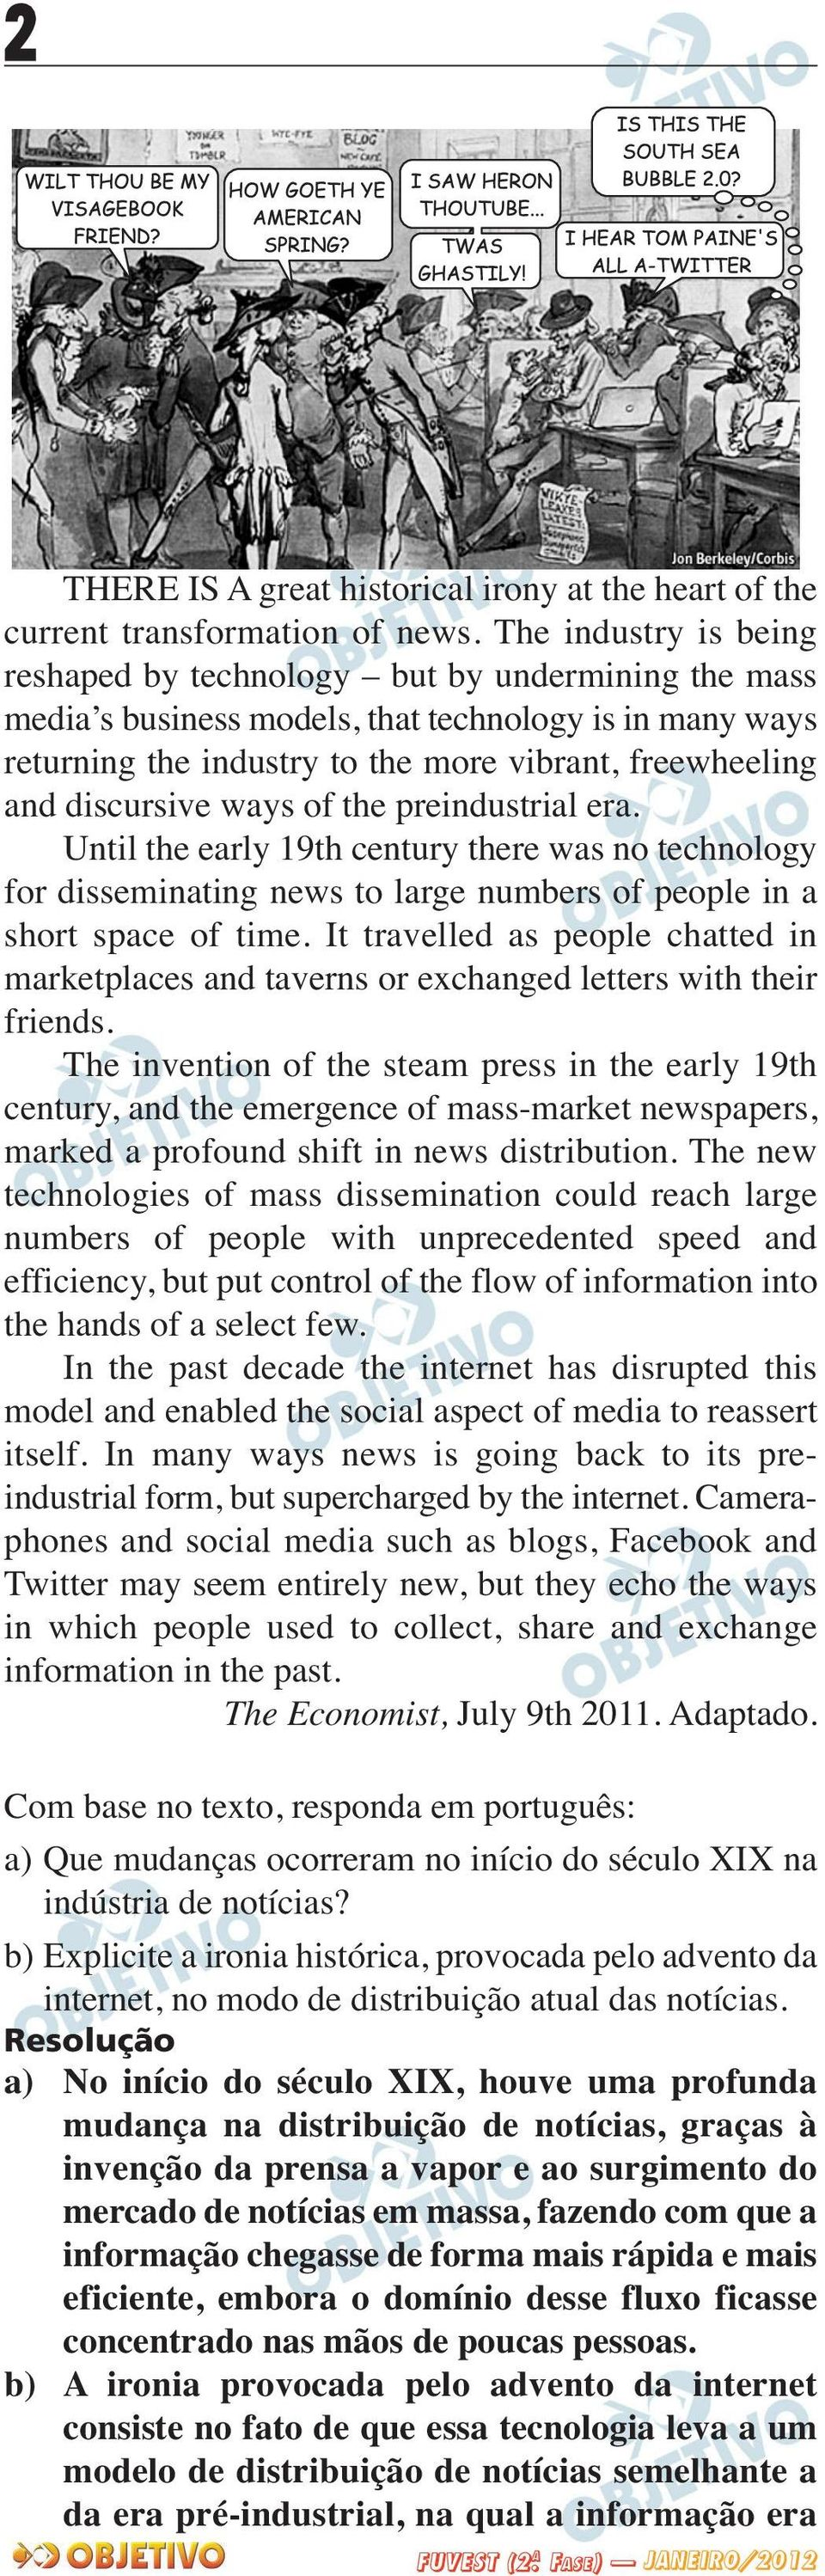 discursive ways of the preindustrial era. Until the early 19th century there was no technology for disseminating news to large numbers of people in a short space of time.